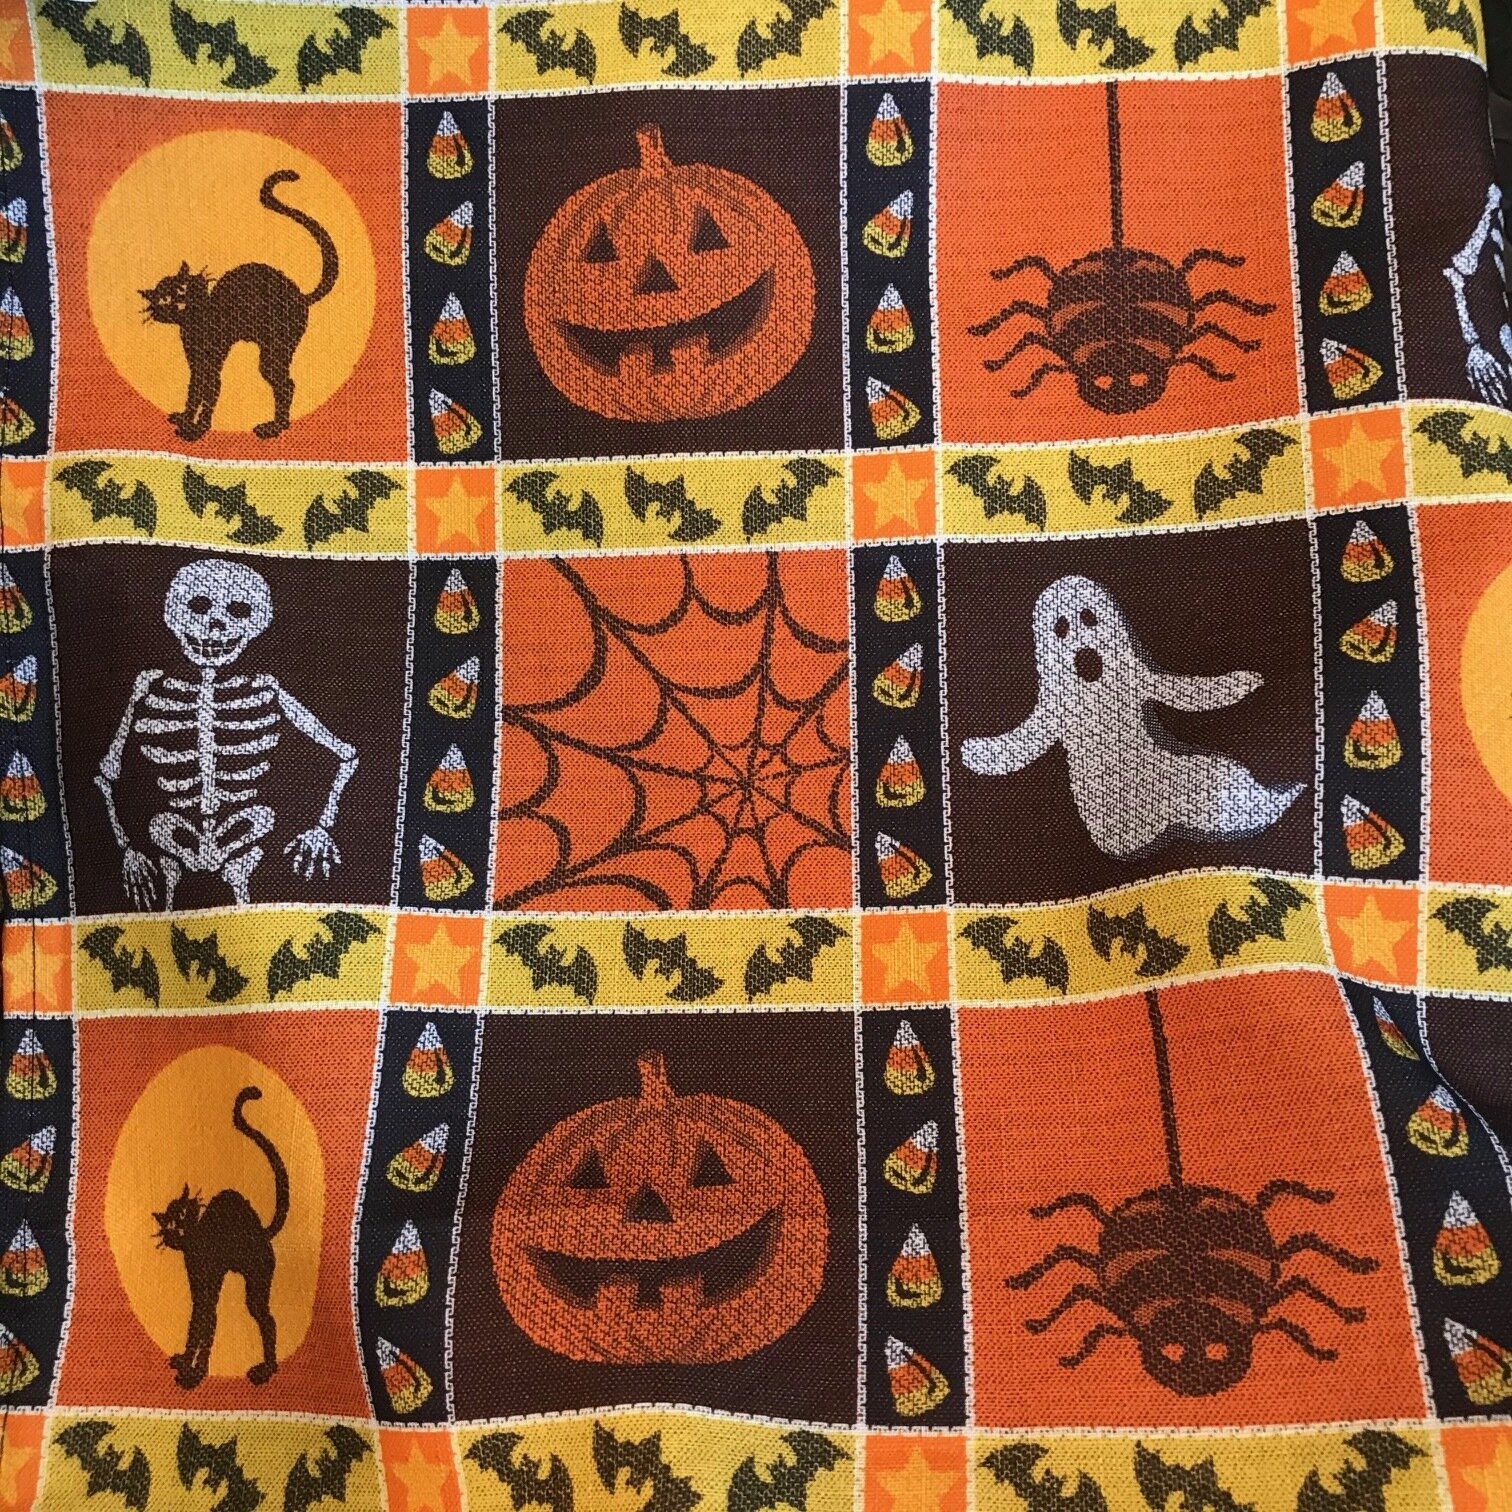 23 HALLOWEEN TABLE COVER B.jpg